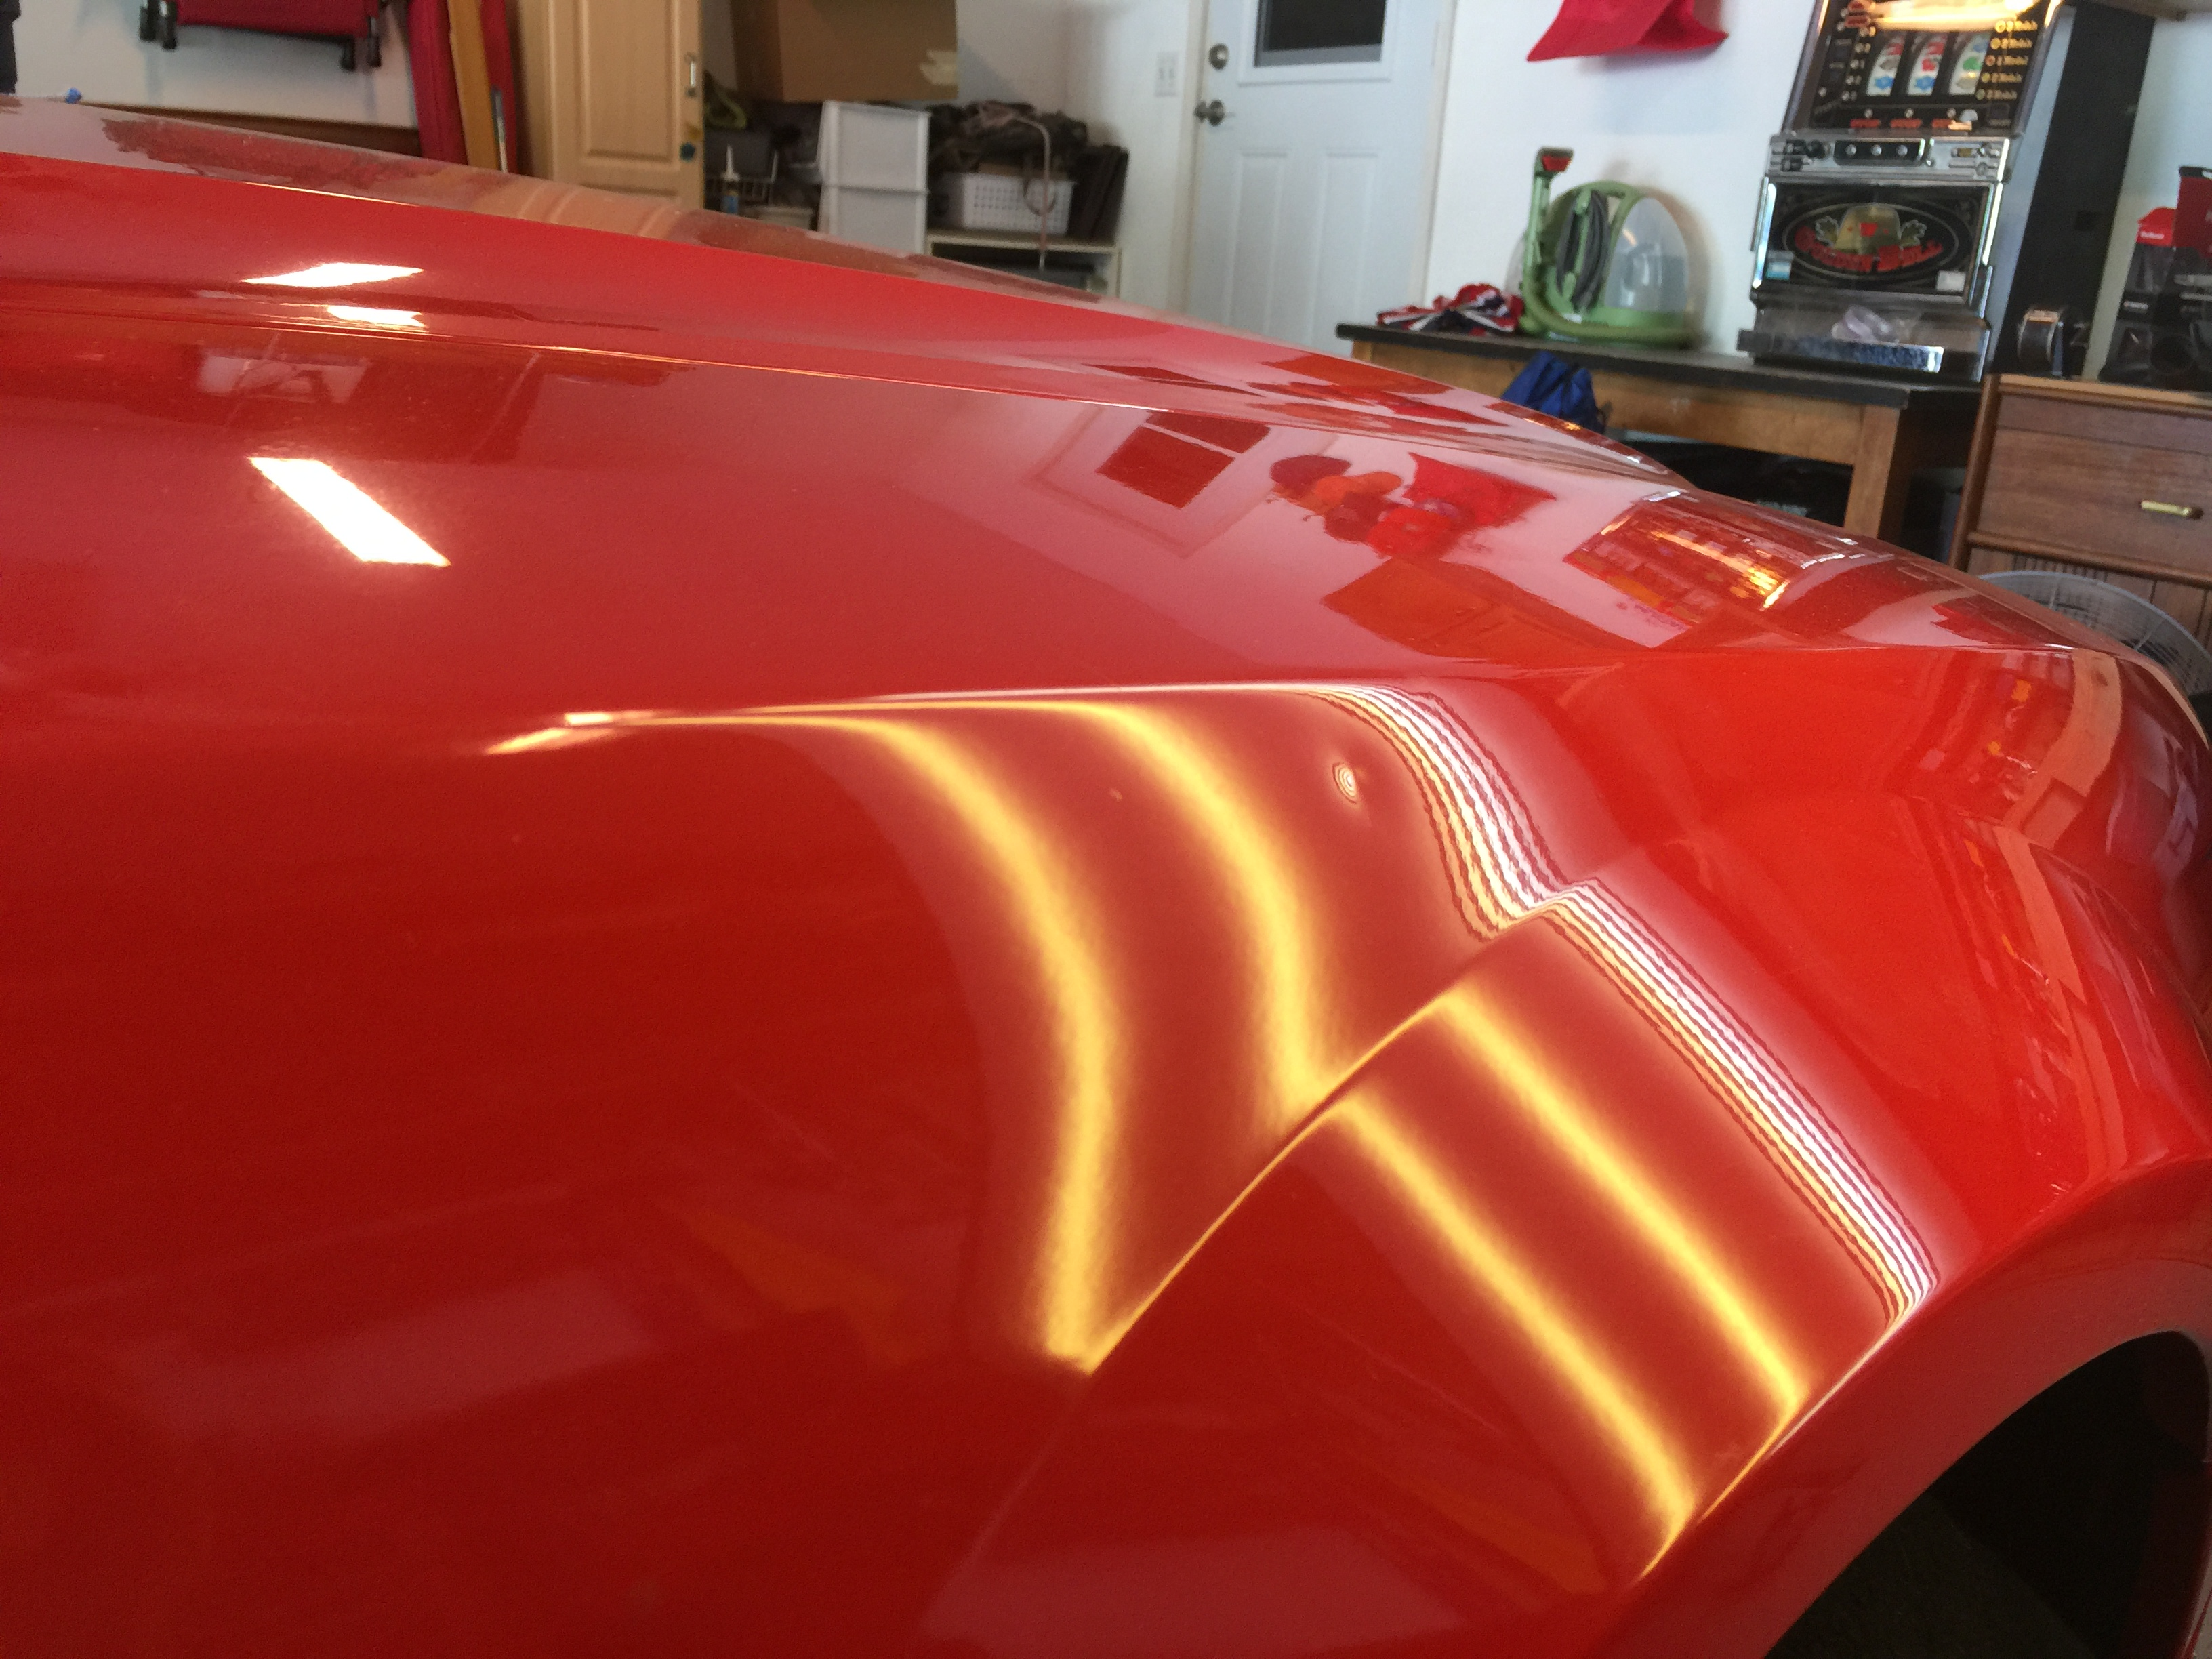 2000 Ford Mustang Fender Dent Removal, Springfield IL. Decatur IL, Paintless Dent Removal, http://217dent.com